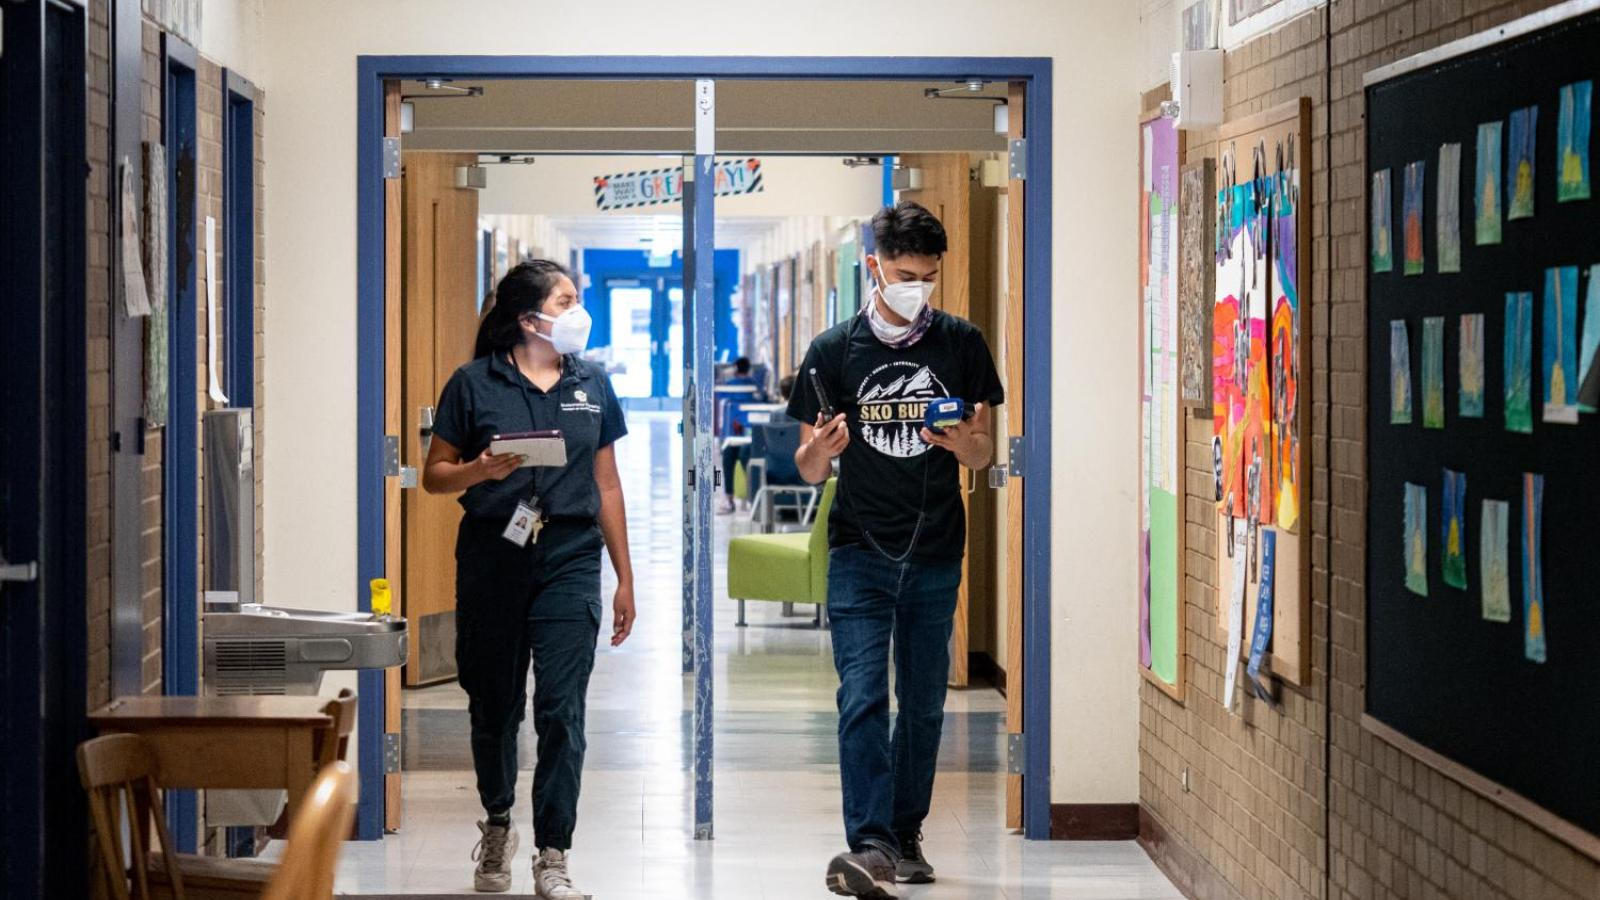 CU Boulder alumna Halle Sago, left, and undergraduate student Ricardo Reyes, right, visit High Peaks Elementary School in Boulder, Colorado, to monitor air quality.